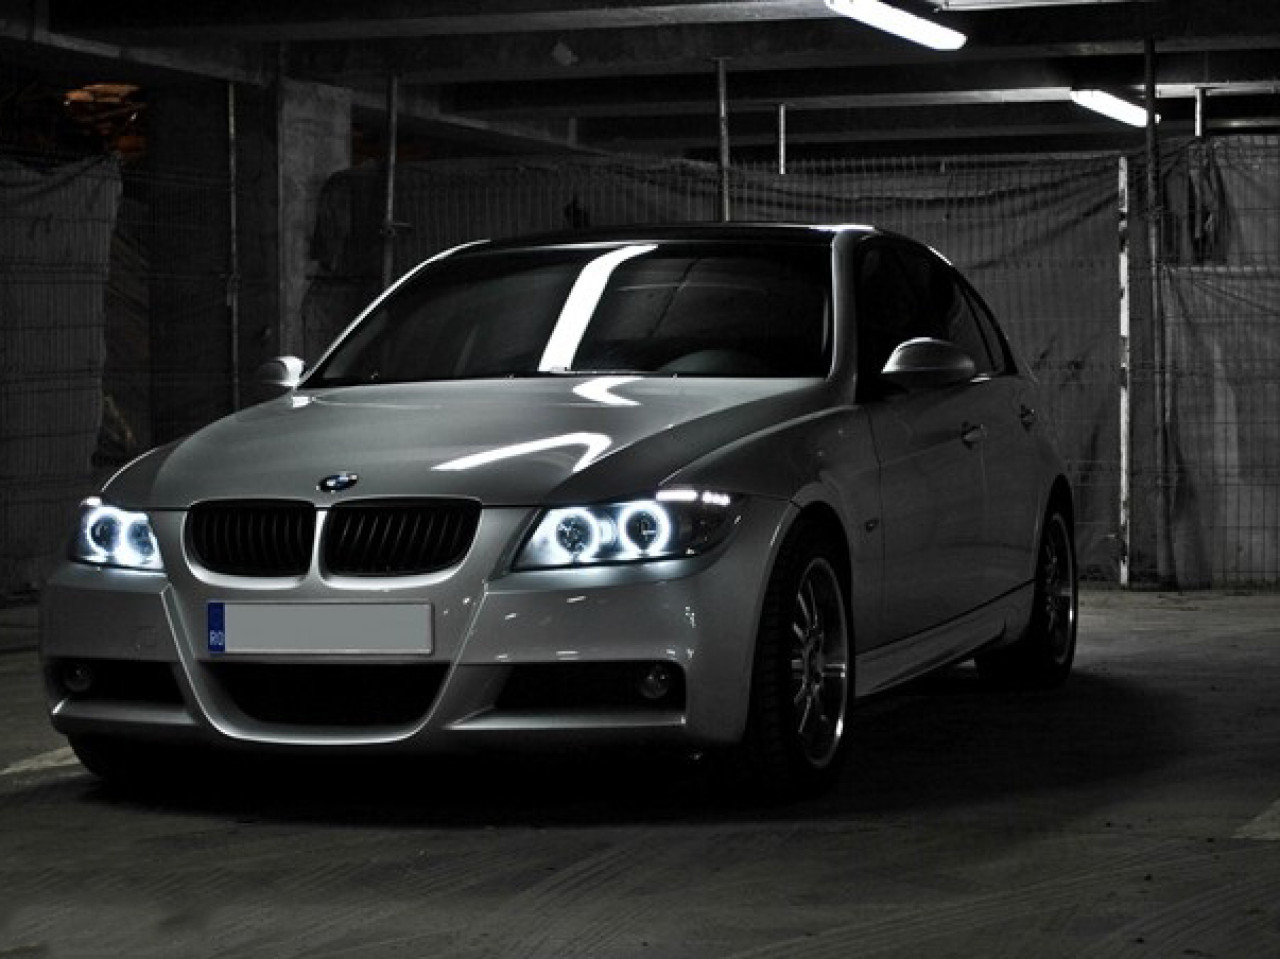 Kit exterior BMW E90 M TECH